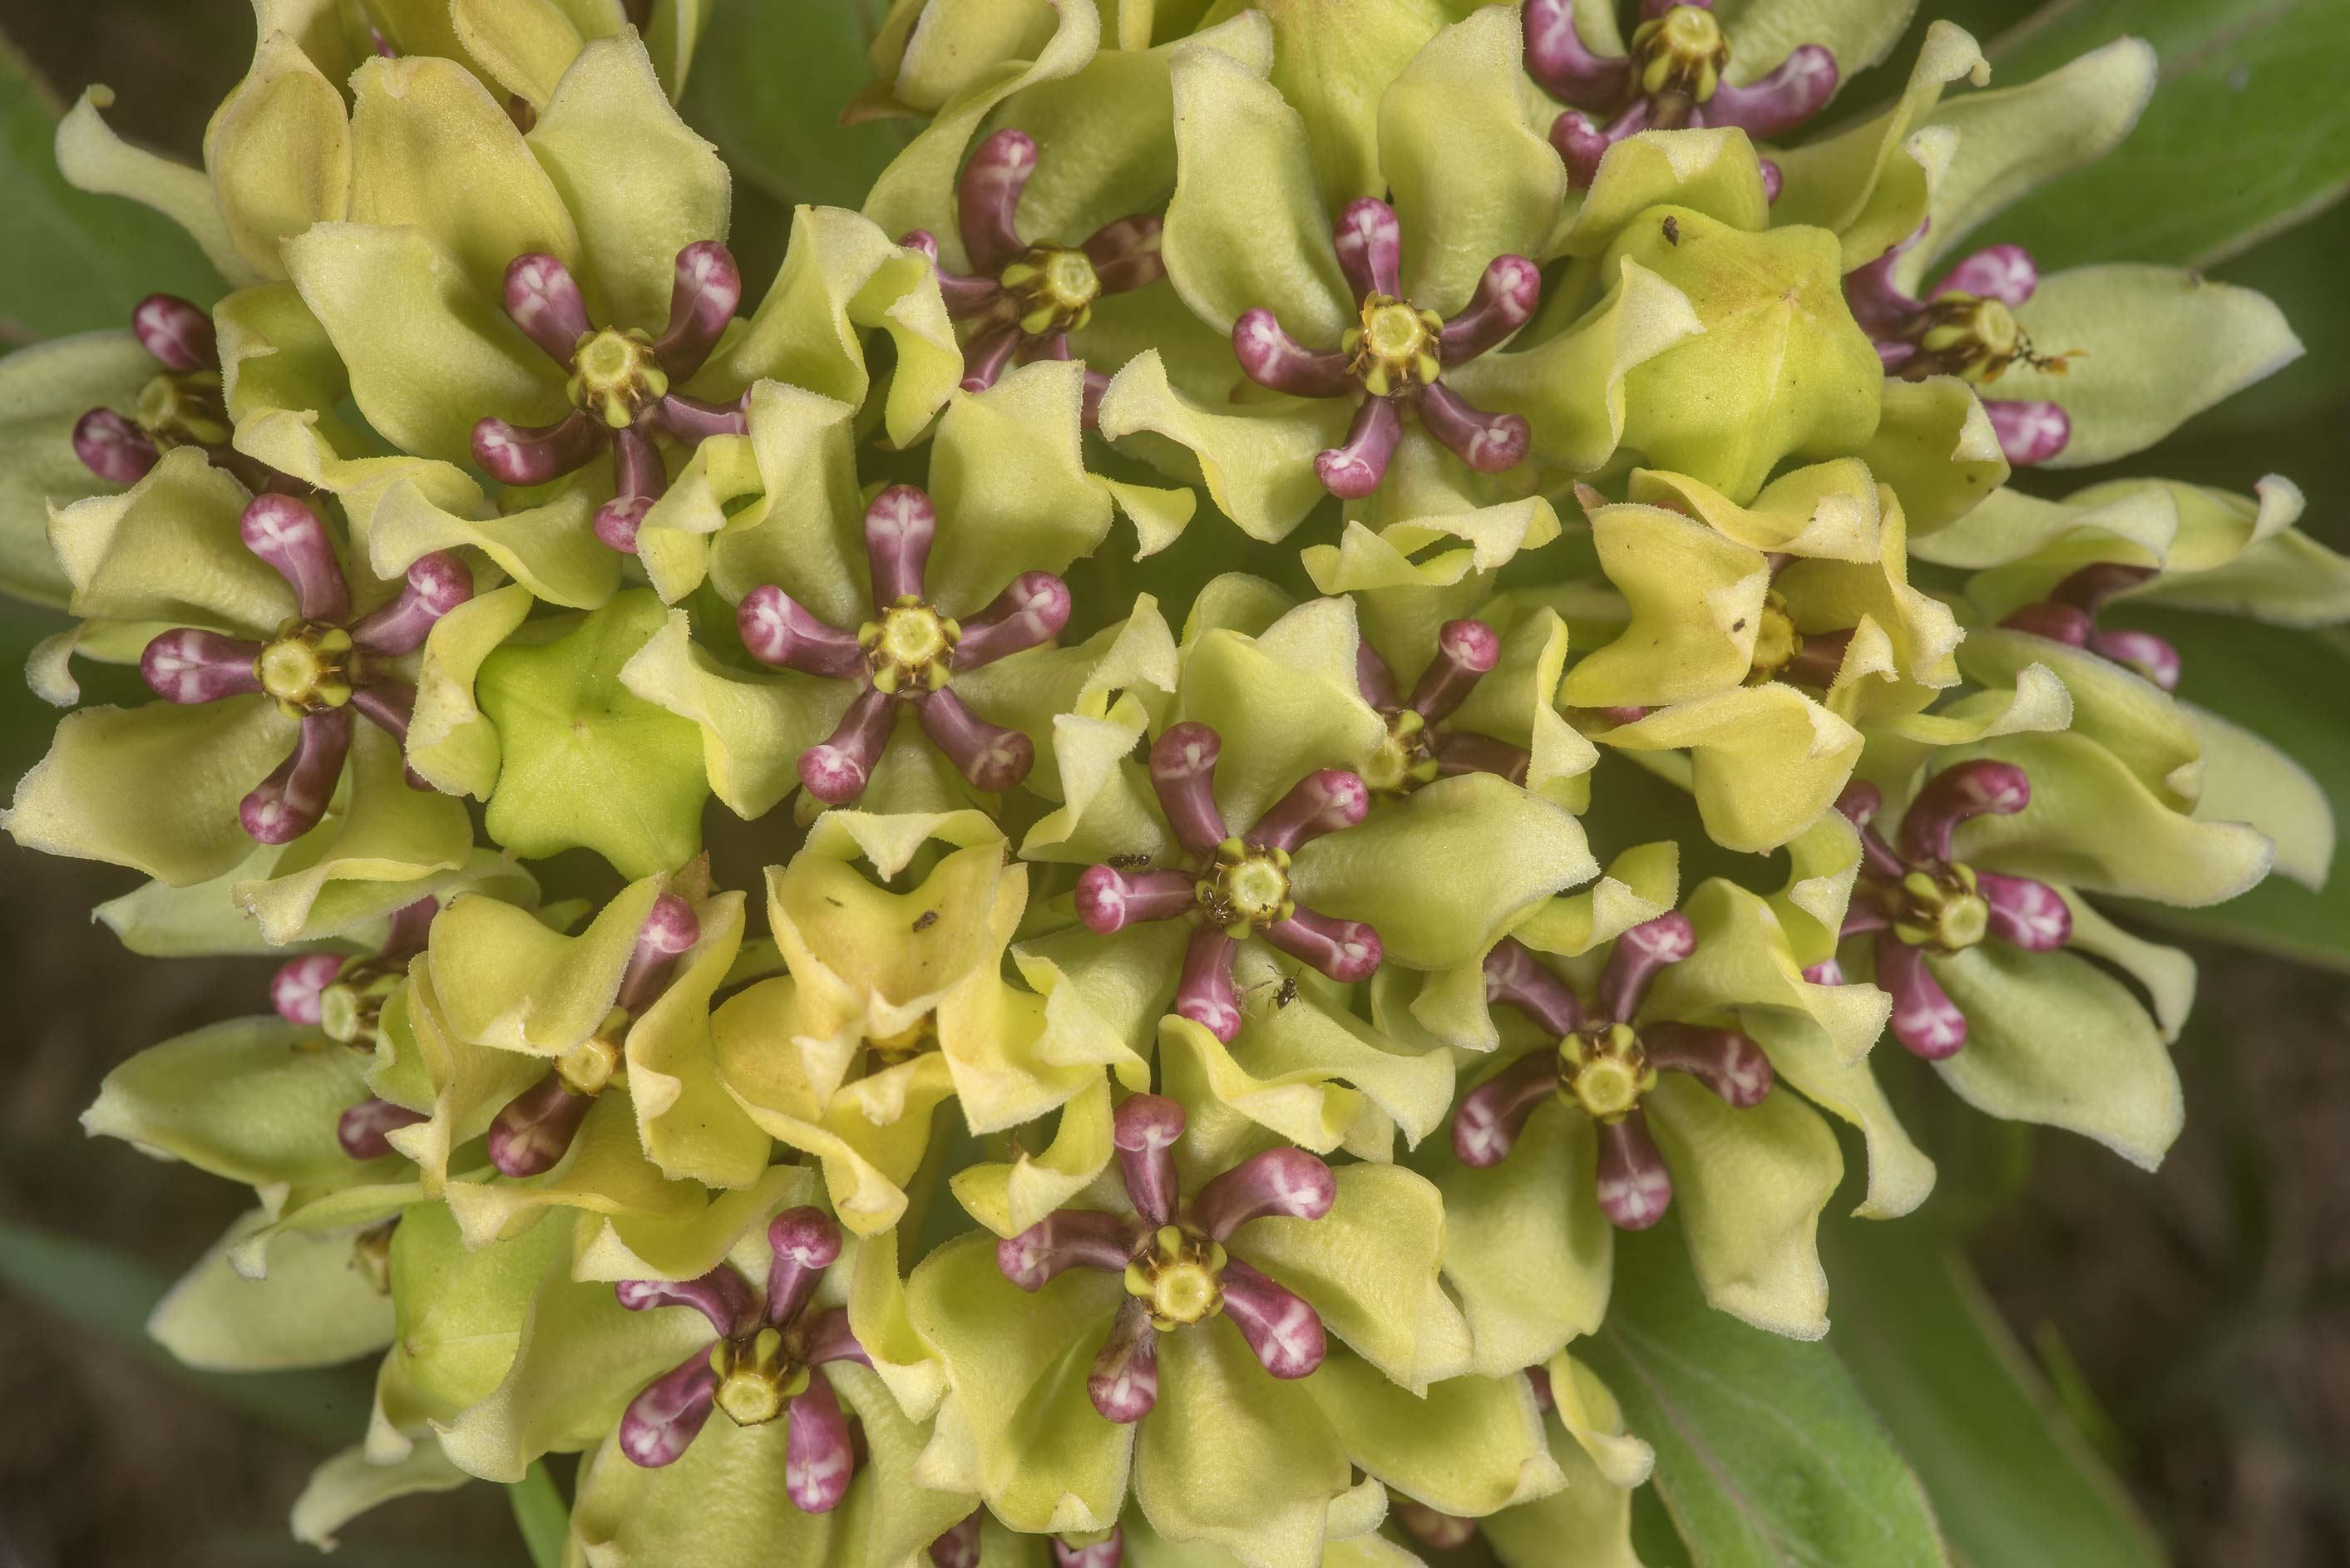 Green milkweed (Asclepias viridis) in bloom on...State Historic Site. Washington, Texas